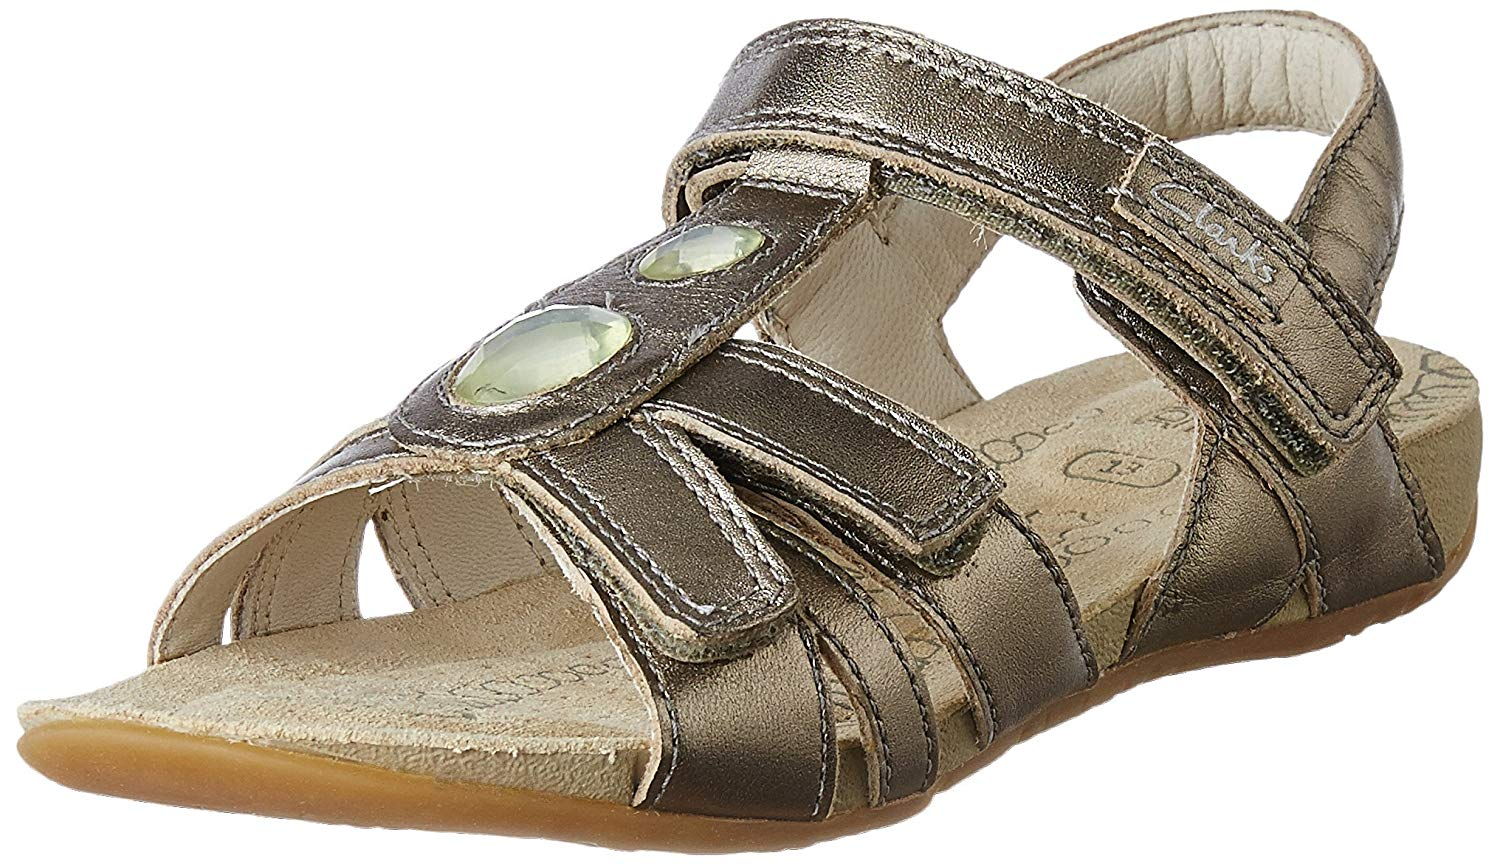 (Size 2.5Kids) Clarks Girl's Leather Fashion Sandals- Amazon